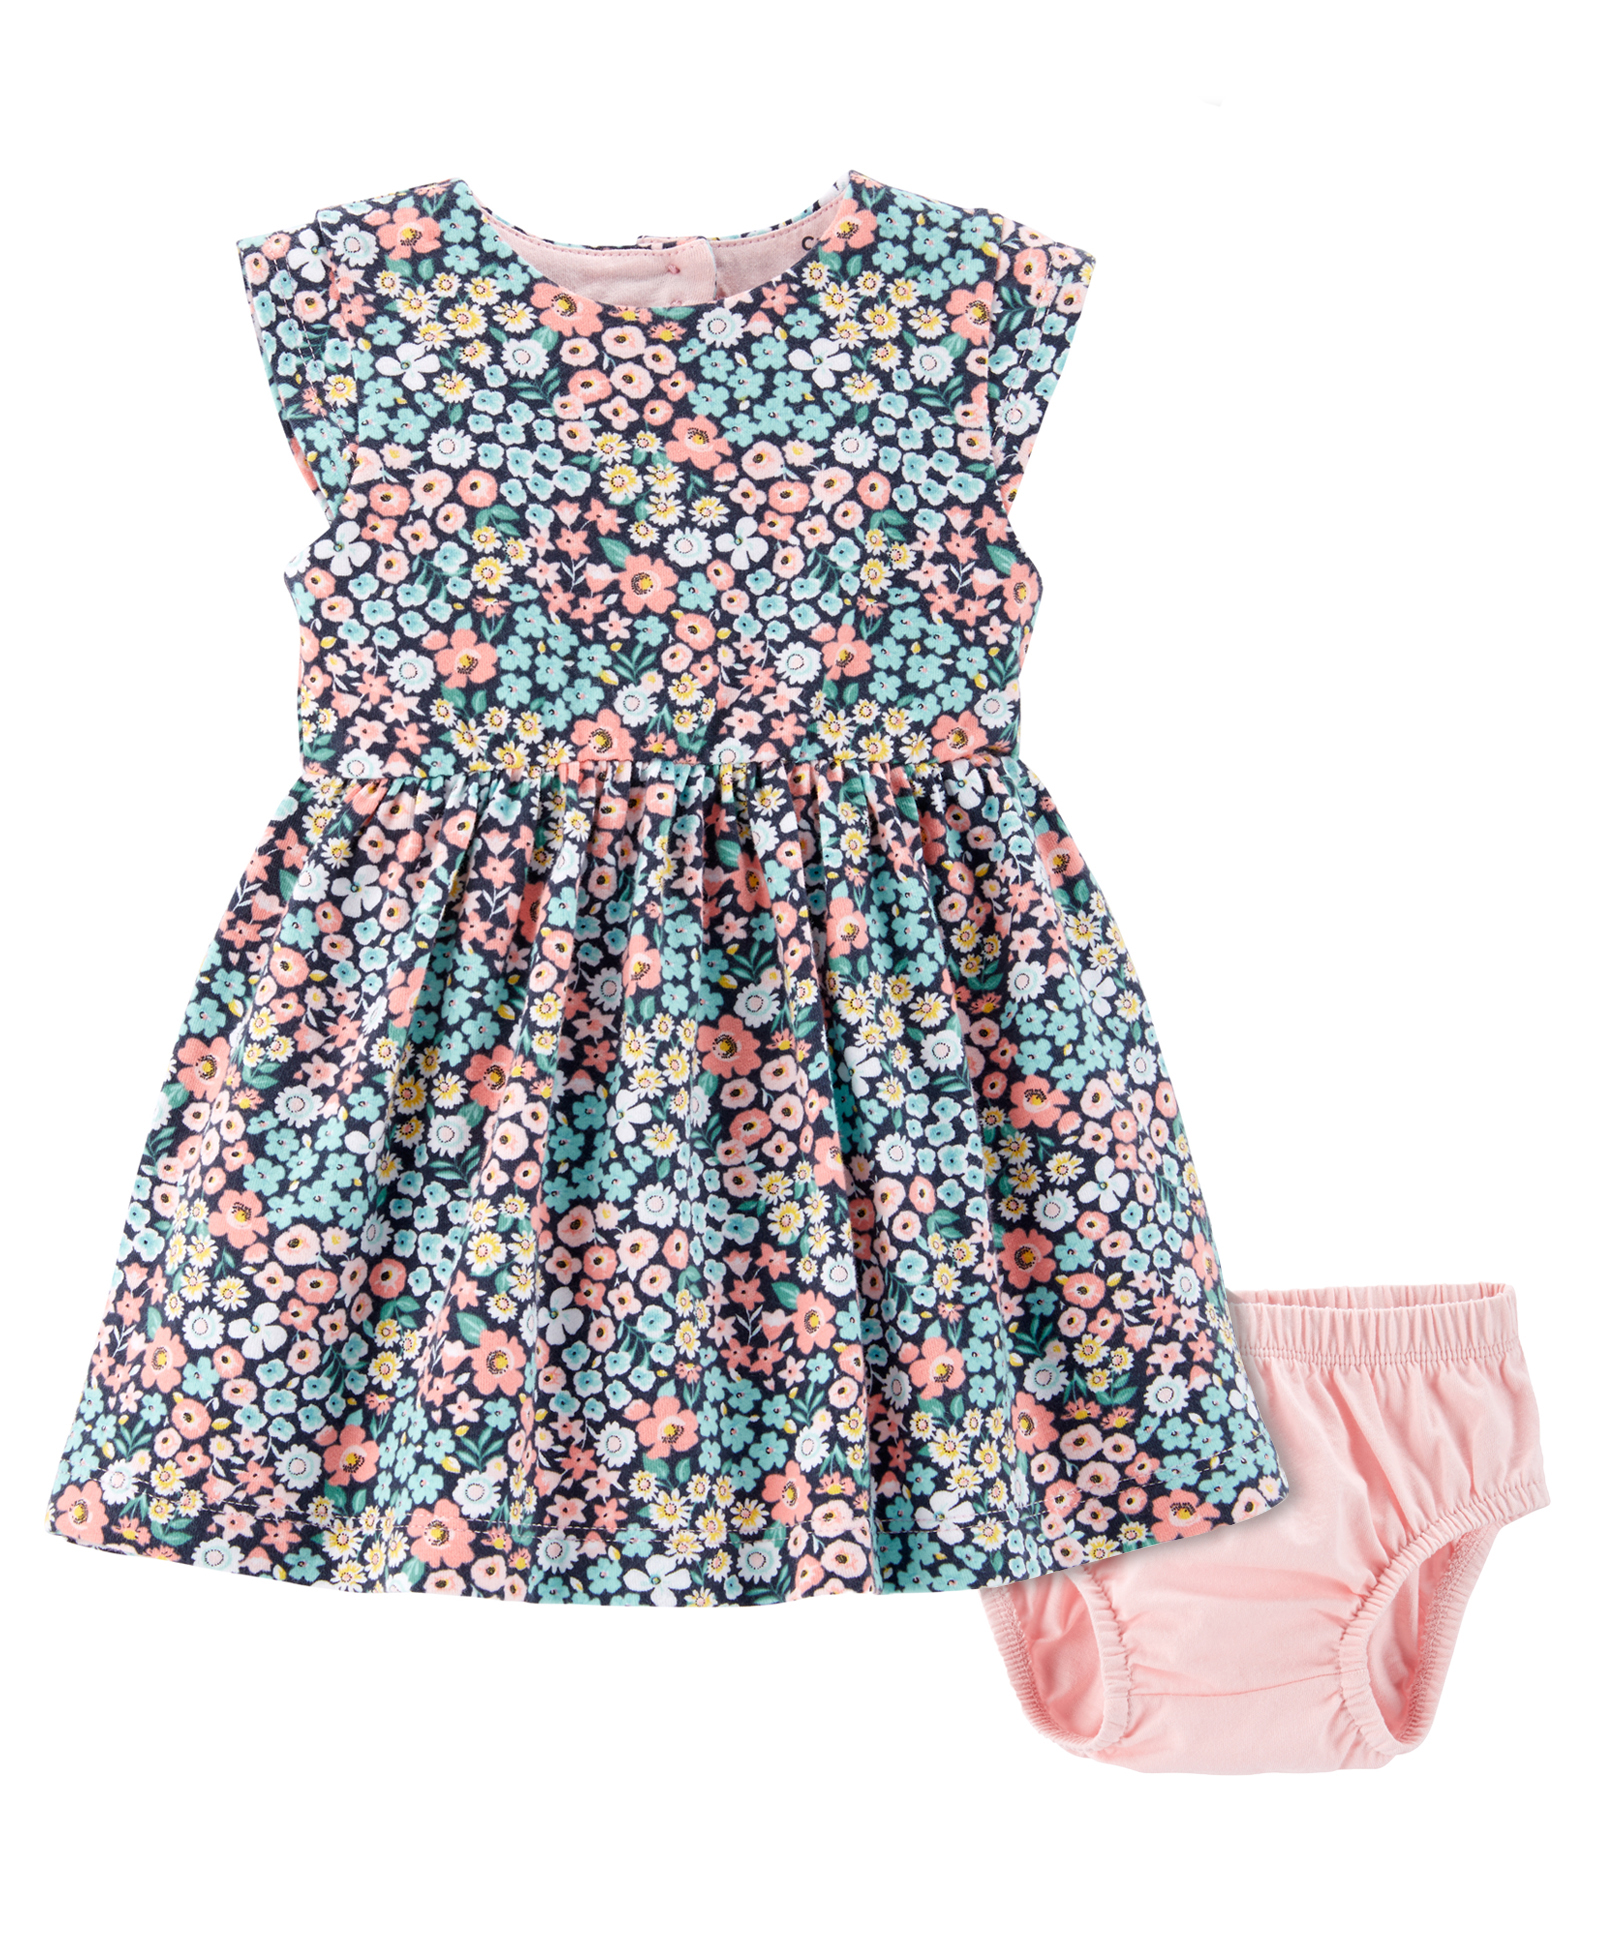 35fcf8e1 Buy Carters Floral Jersey Dress Multicolour for Girls (9-12 Months ...